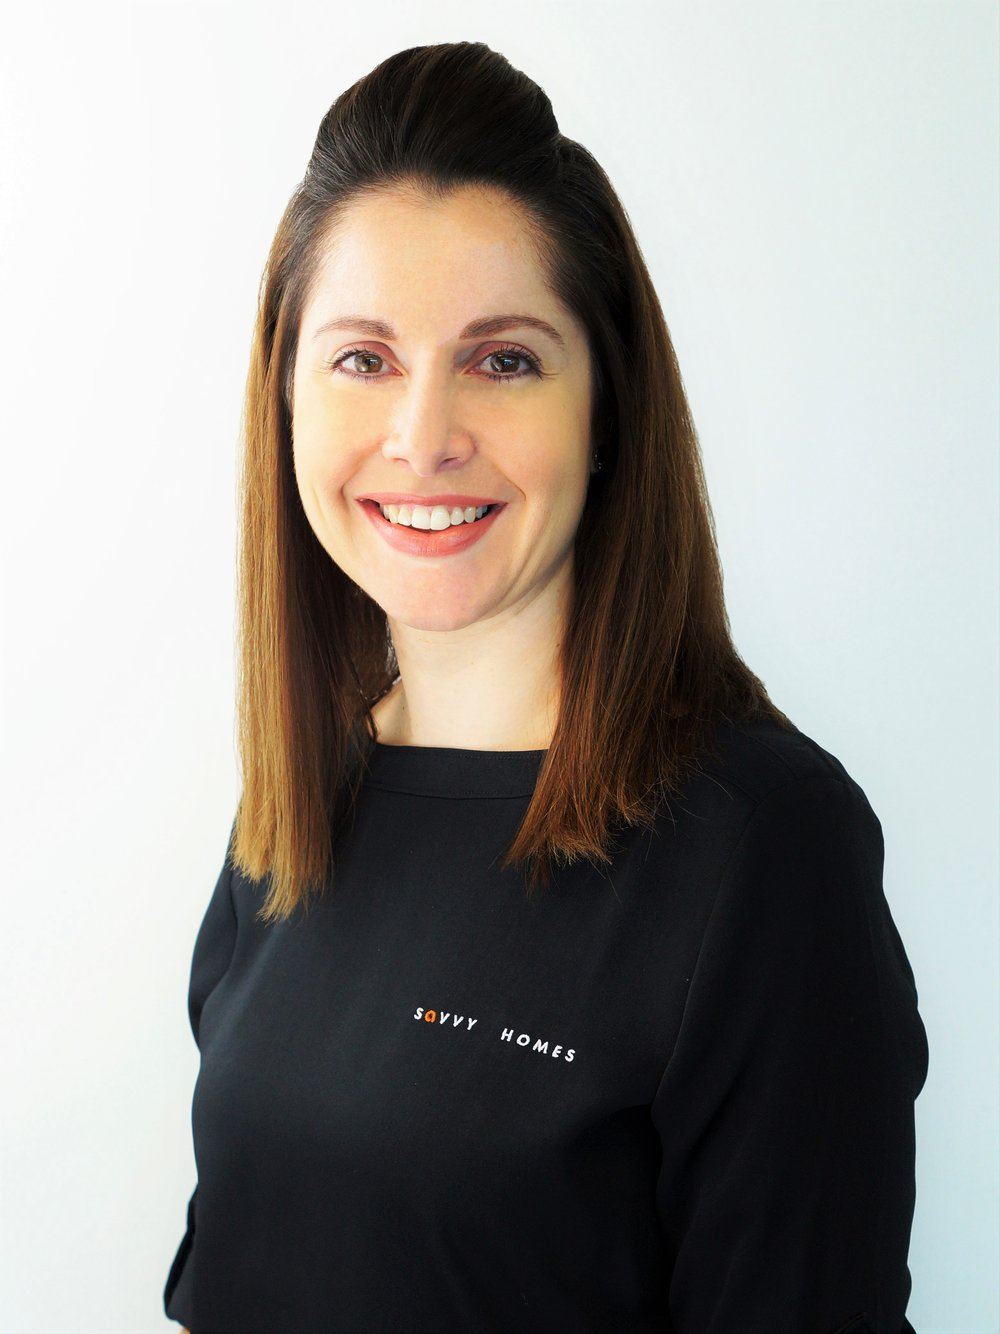 Michelle Xuereb - Savvy Homes Finance Manager